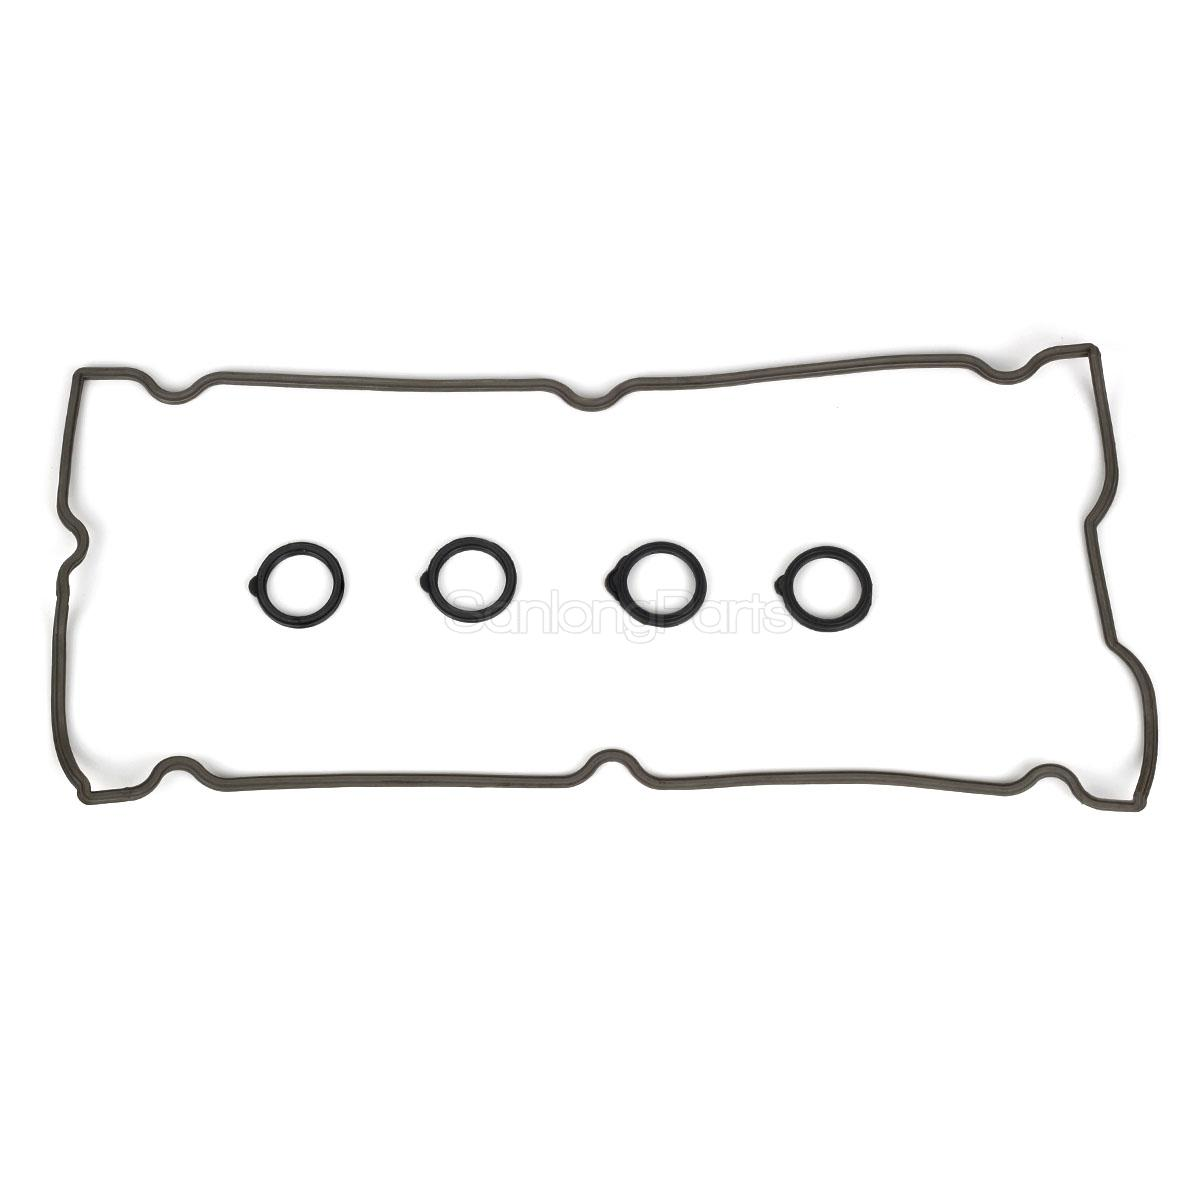 Valve Cover Gasket Kit For Chrysler Pt Cruiser Sebring For